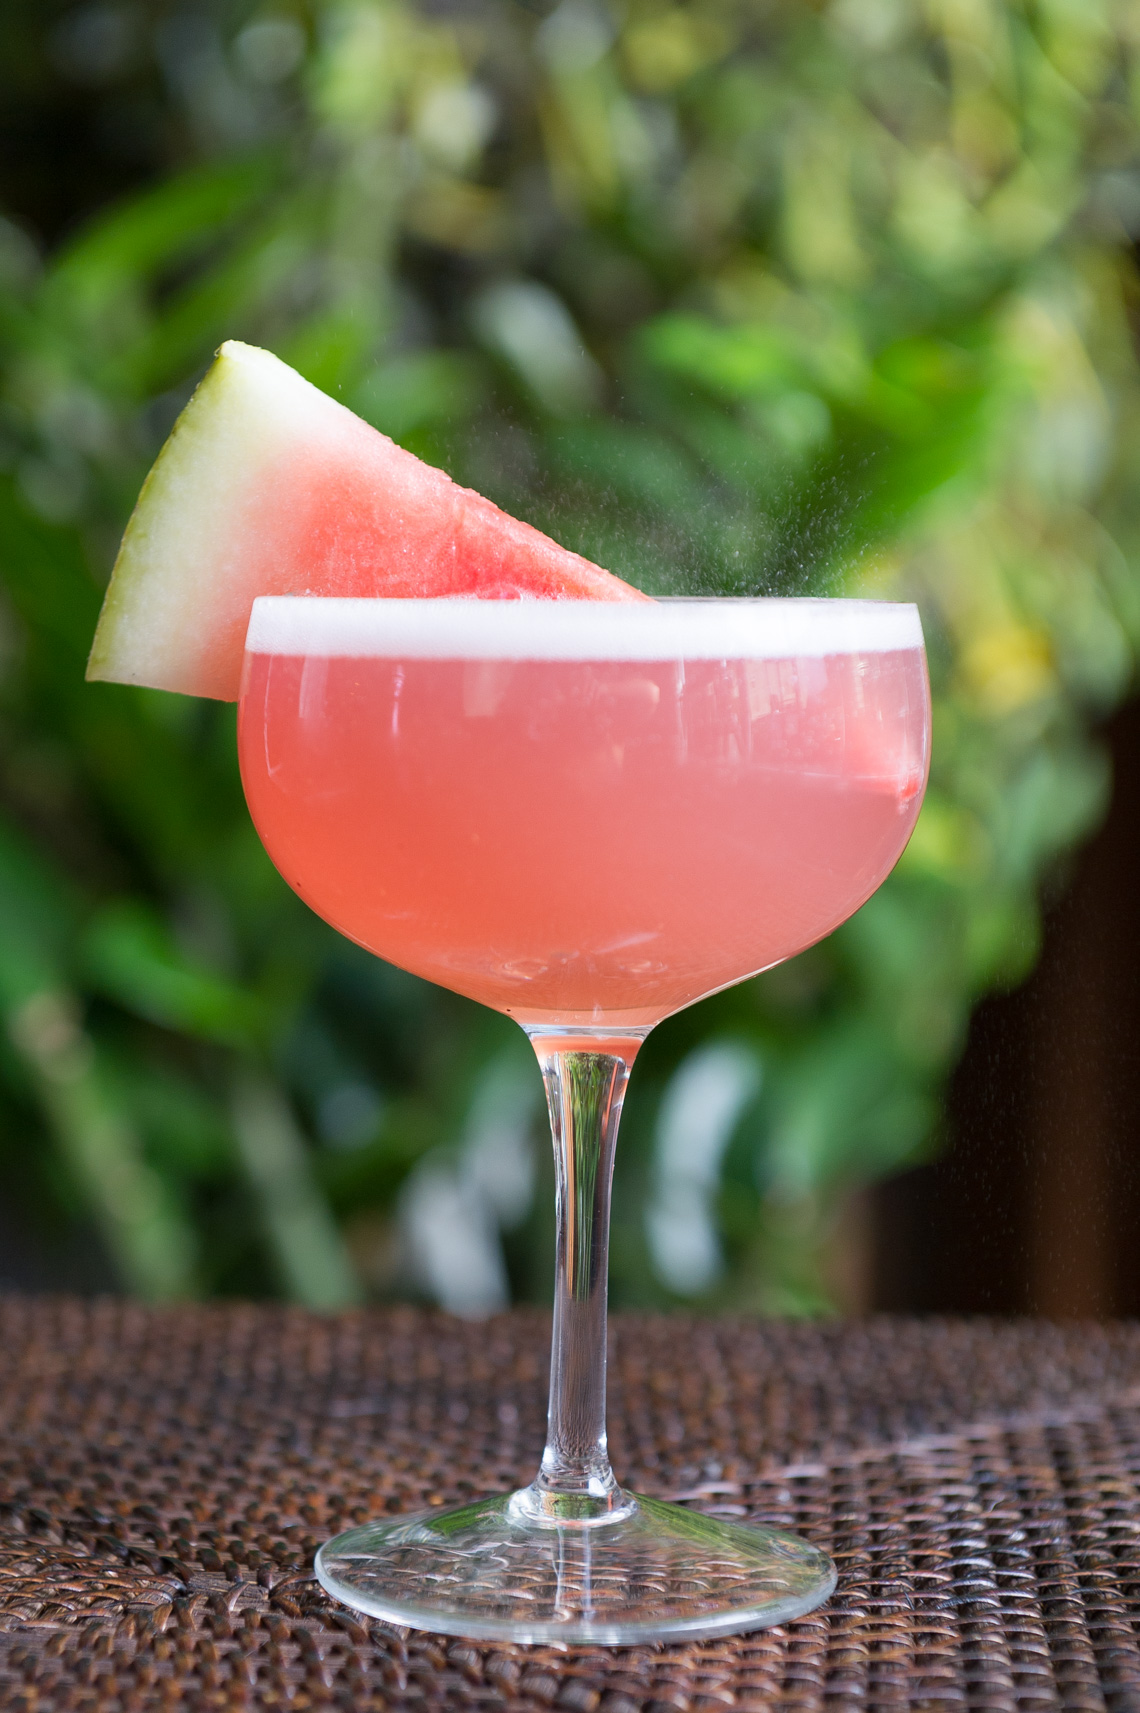 NYC Food Photographer - Watermelon Cocktail